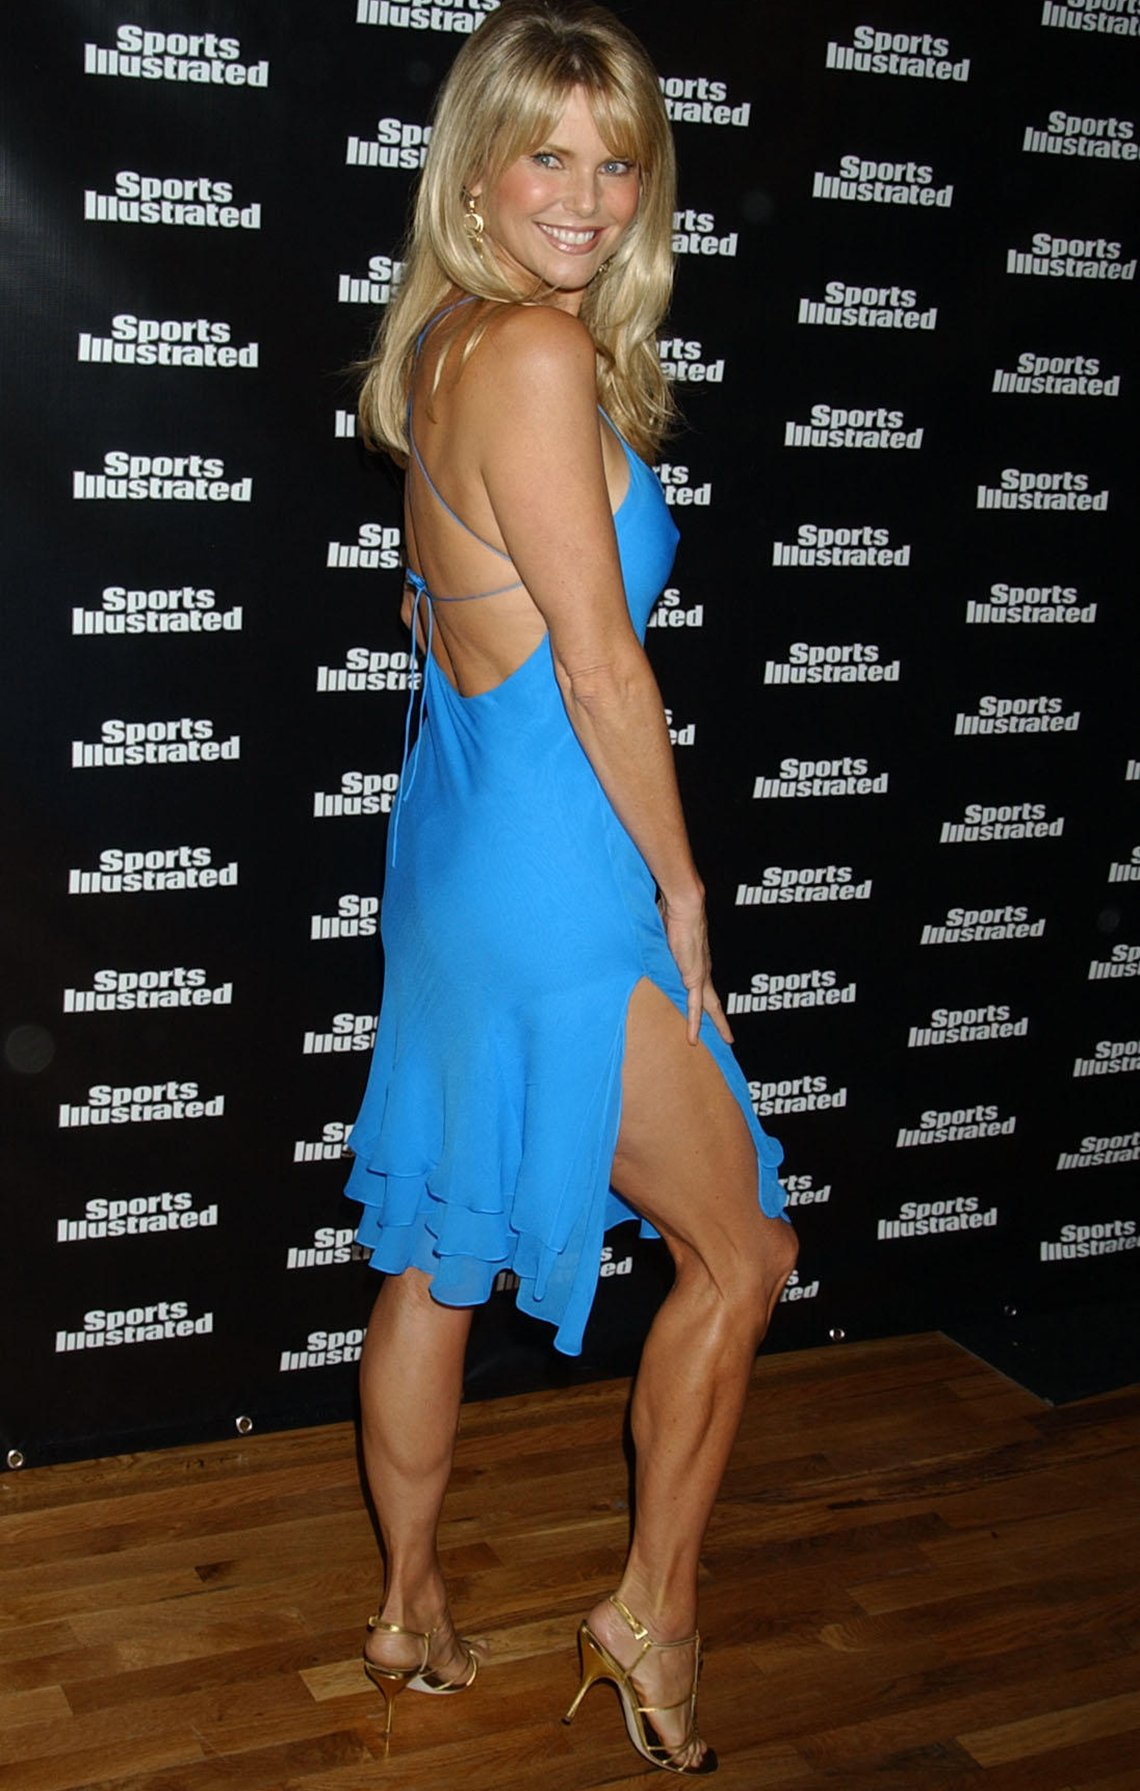 Christie Brinkley in front of a Sports Illustrated sign